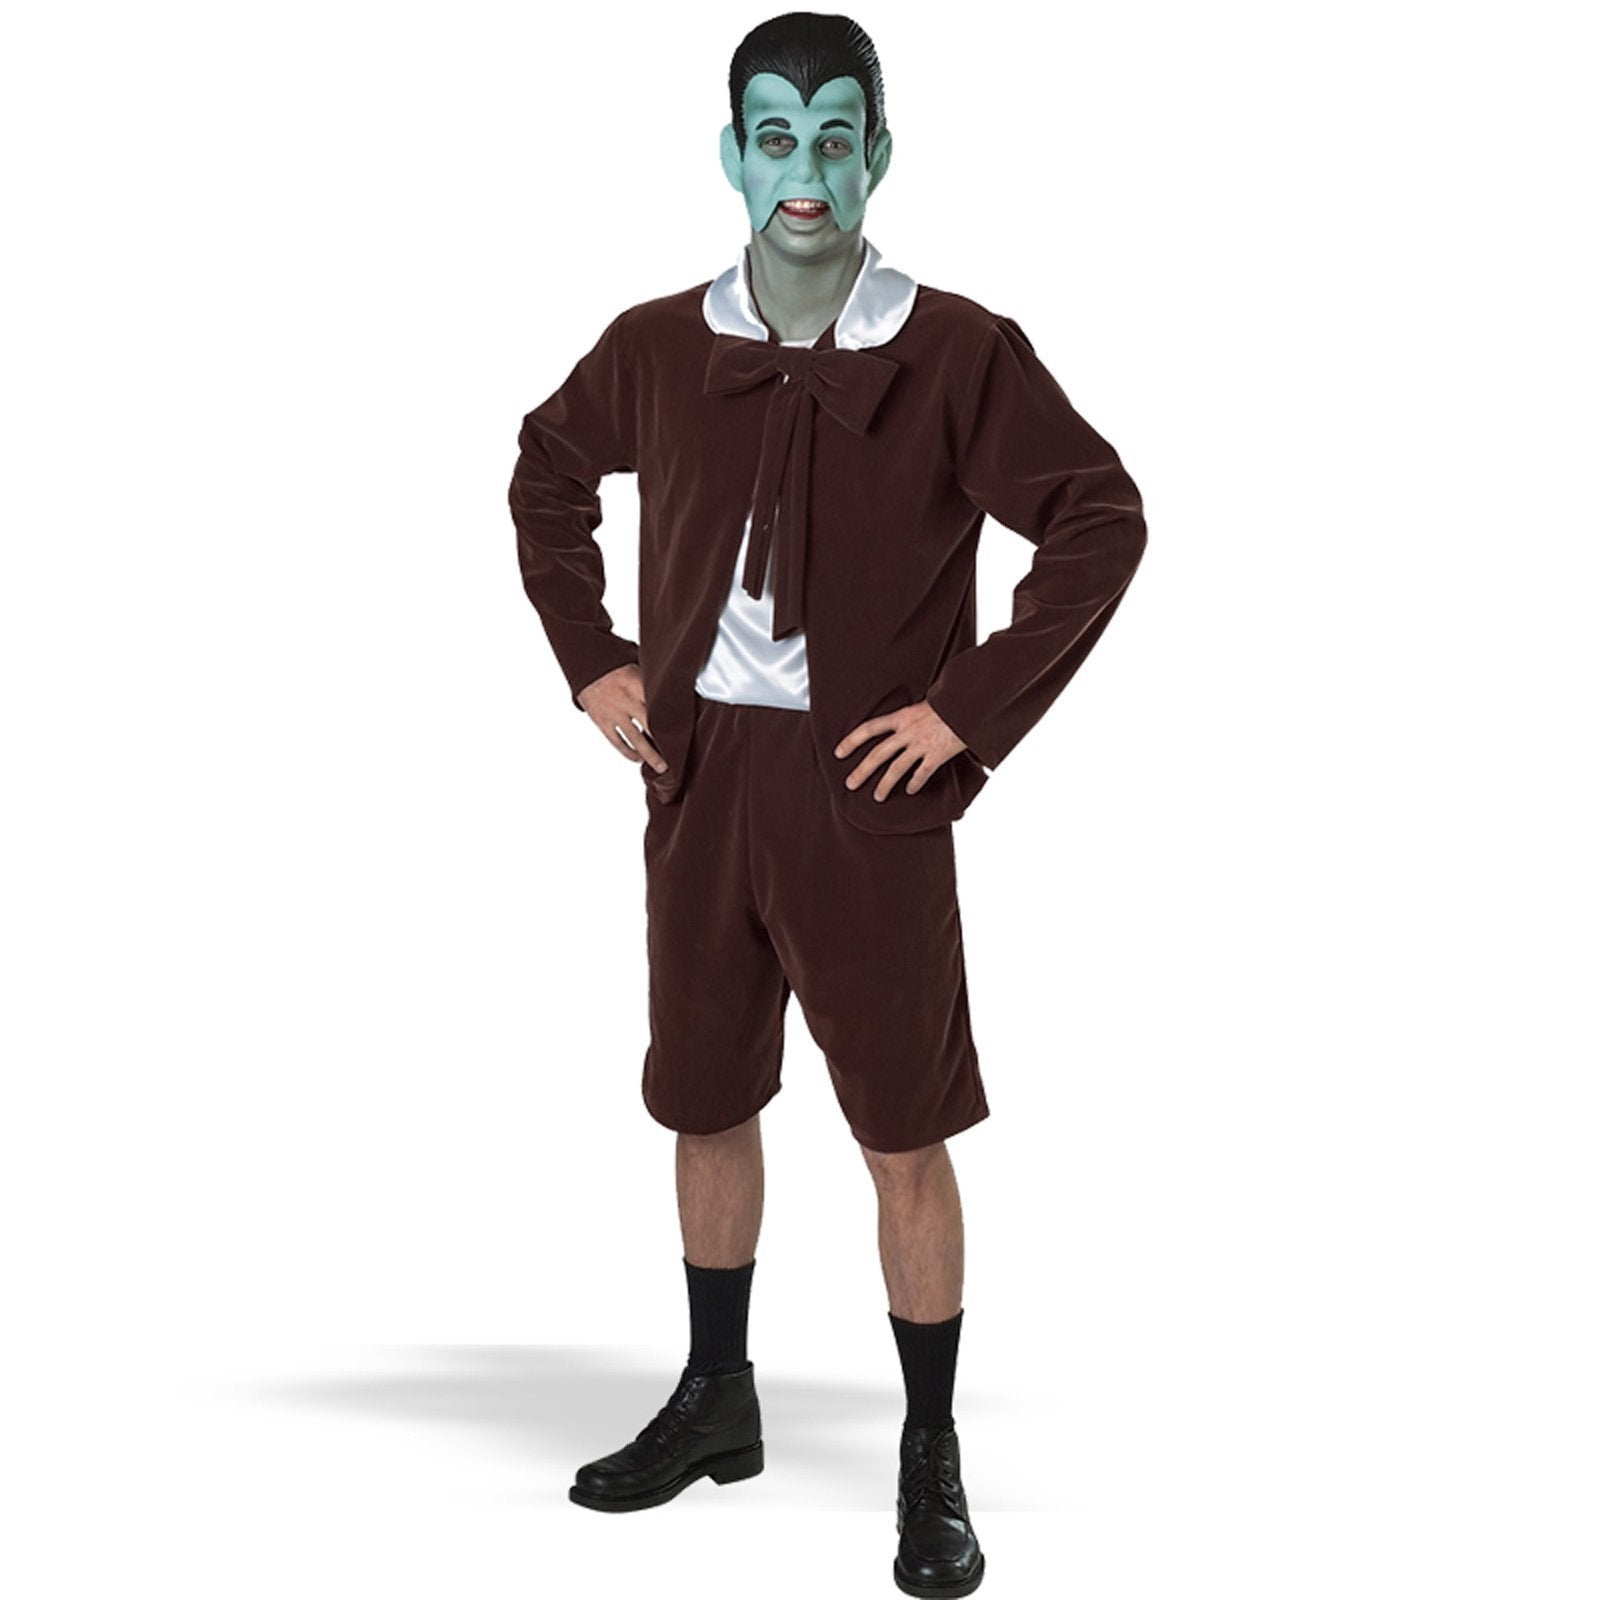 Eddie Munster (The Munster's) Costume - Hire - The Costume Company | Fancy Dress Costumes Hire and Purchase Brisbane and Australia